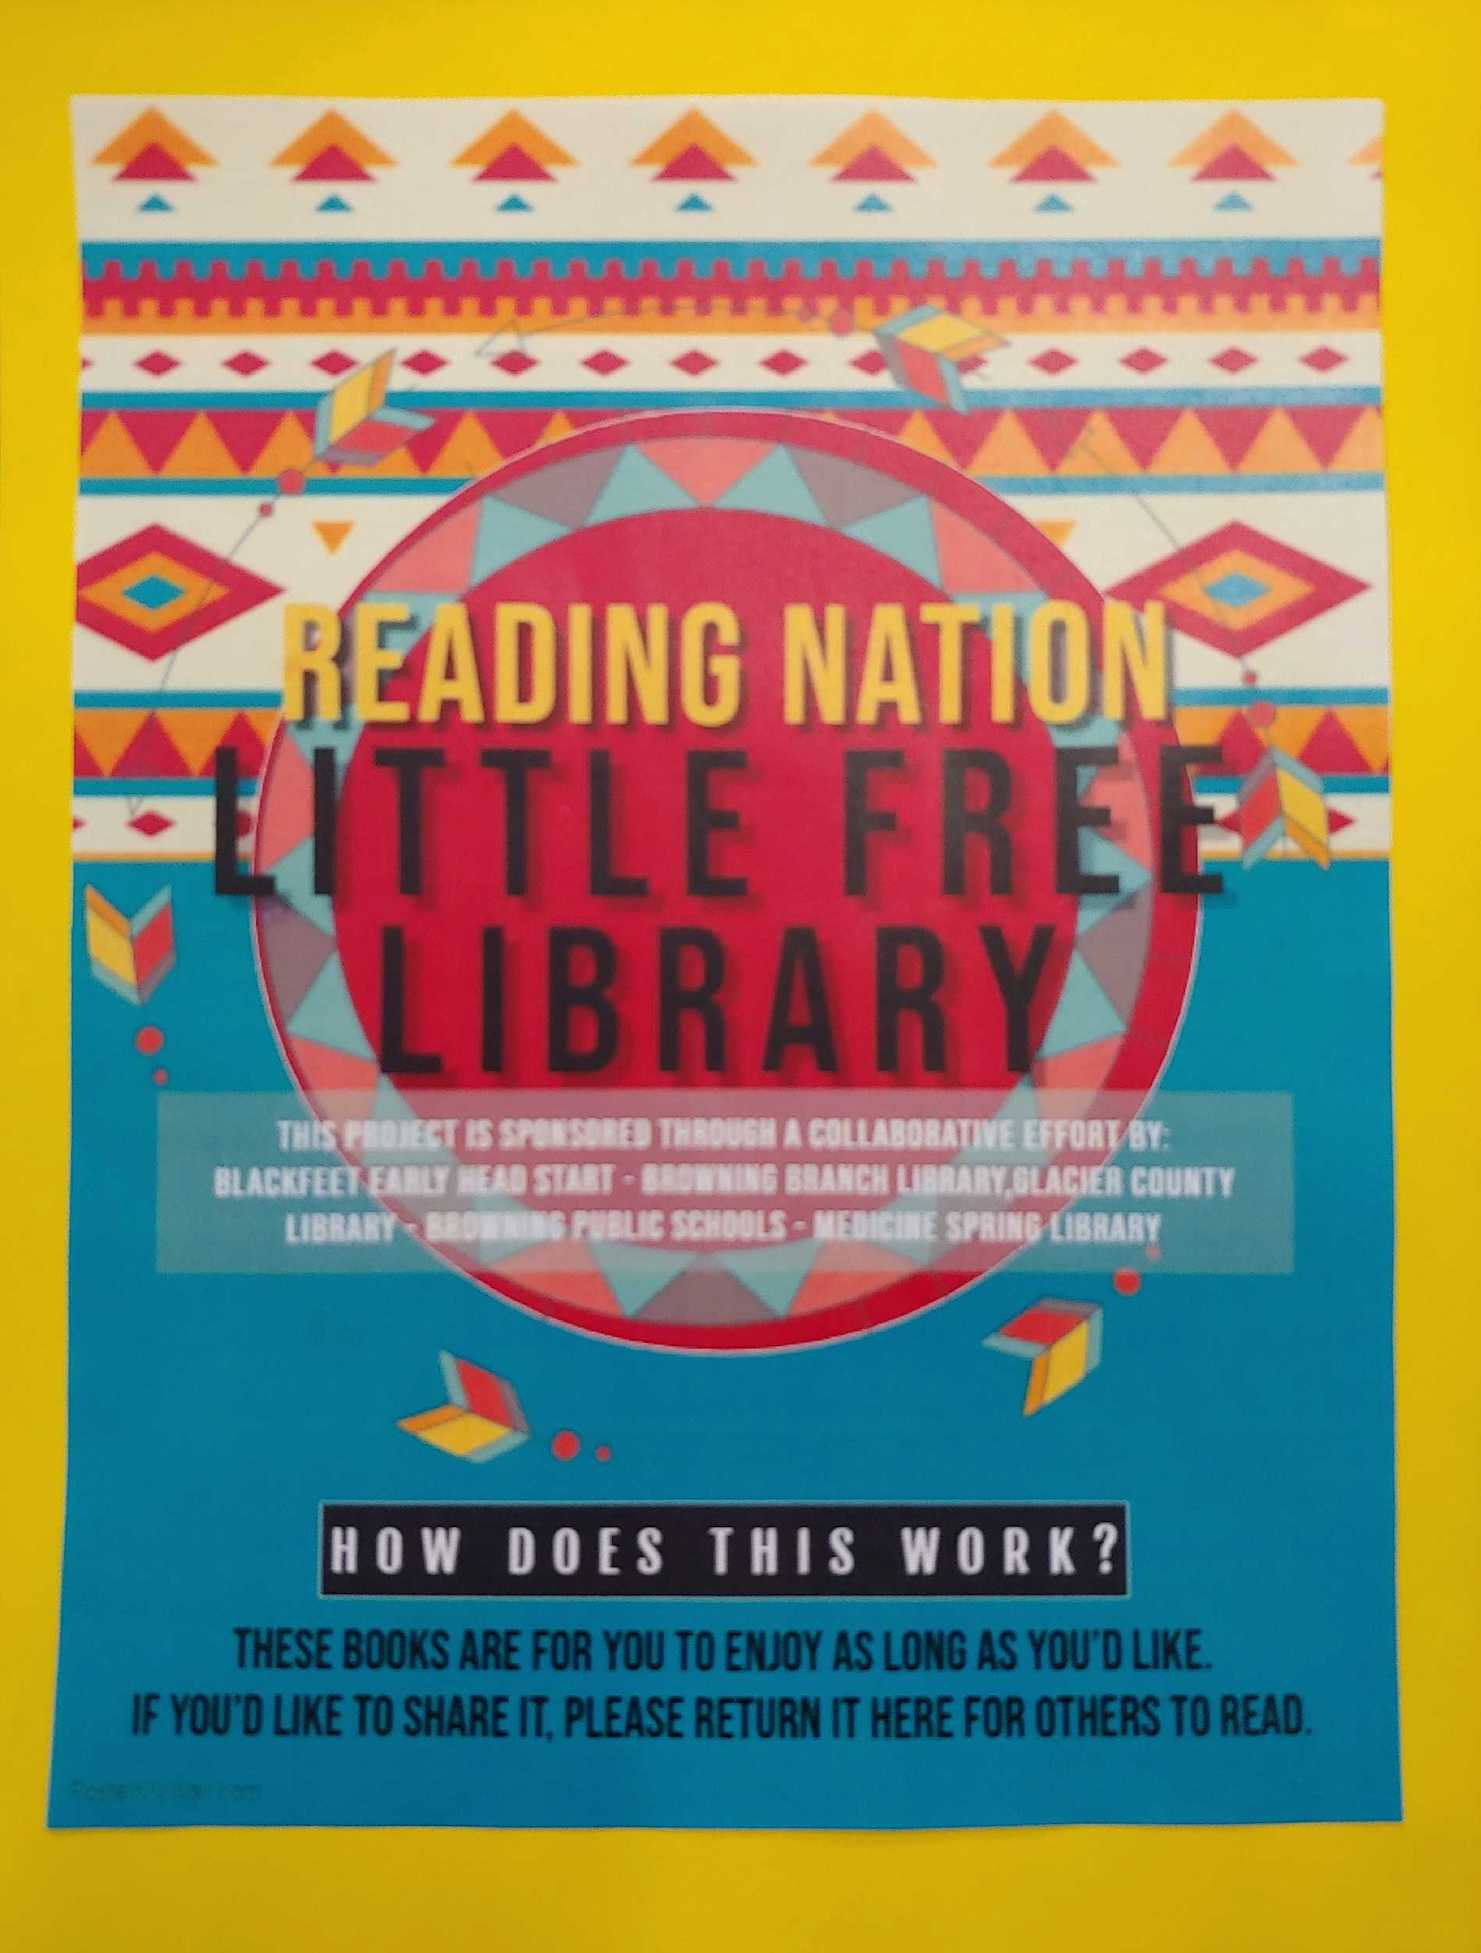 IMLS-Funded Reading Nation Waterfall Project To Bring Curated Little Free Libraries To Native American Children